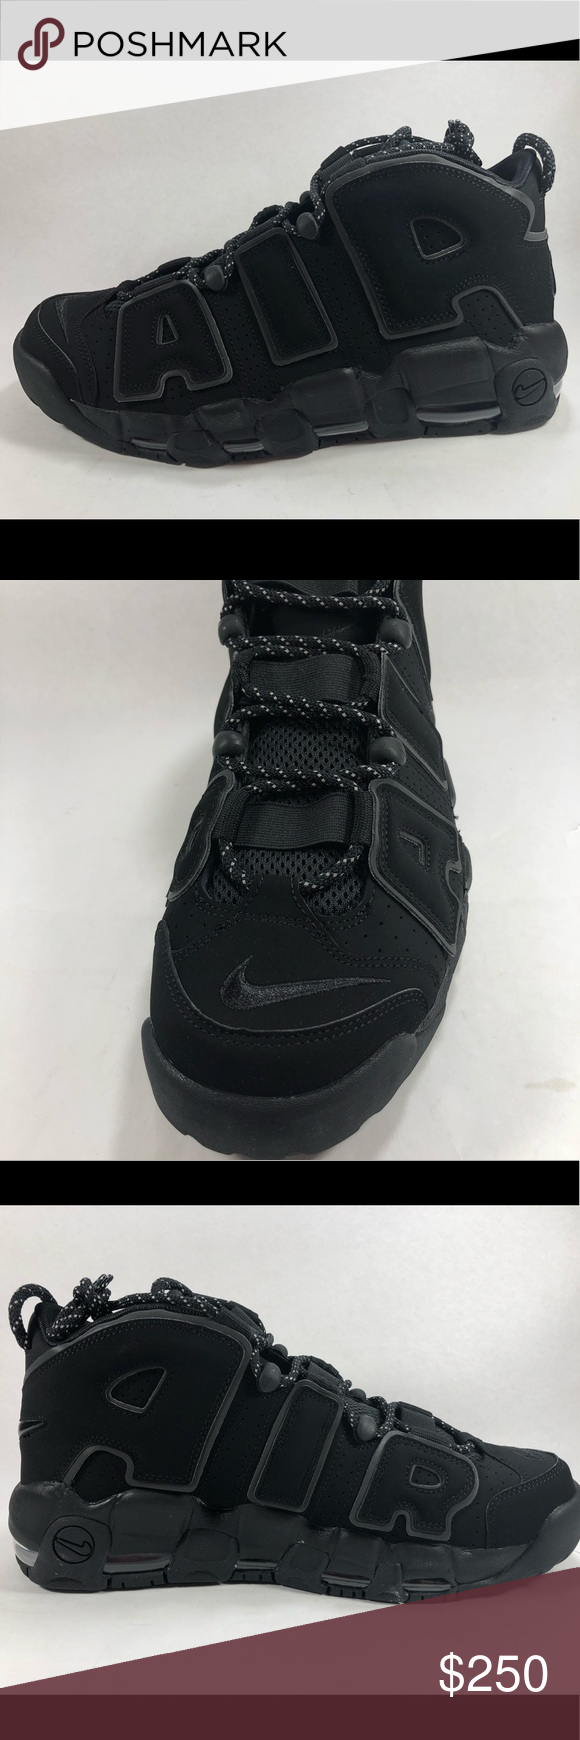 414962-004 Released in March 2018 Sold our on Nike.com SNKRS.com Nike Shoes  Sneakers c82690786